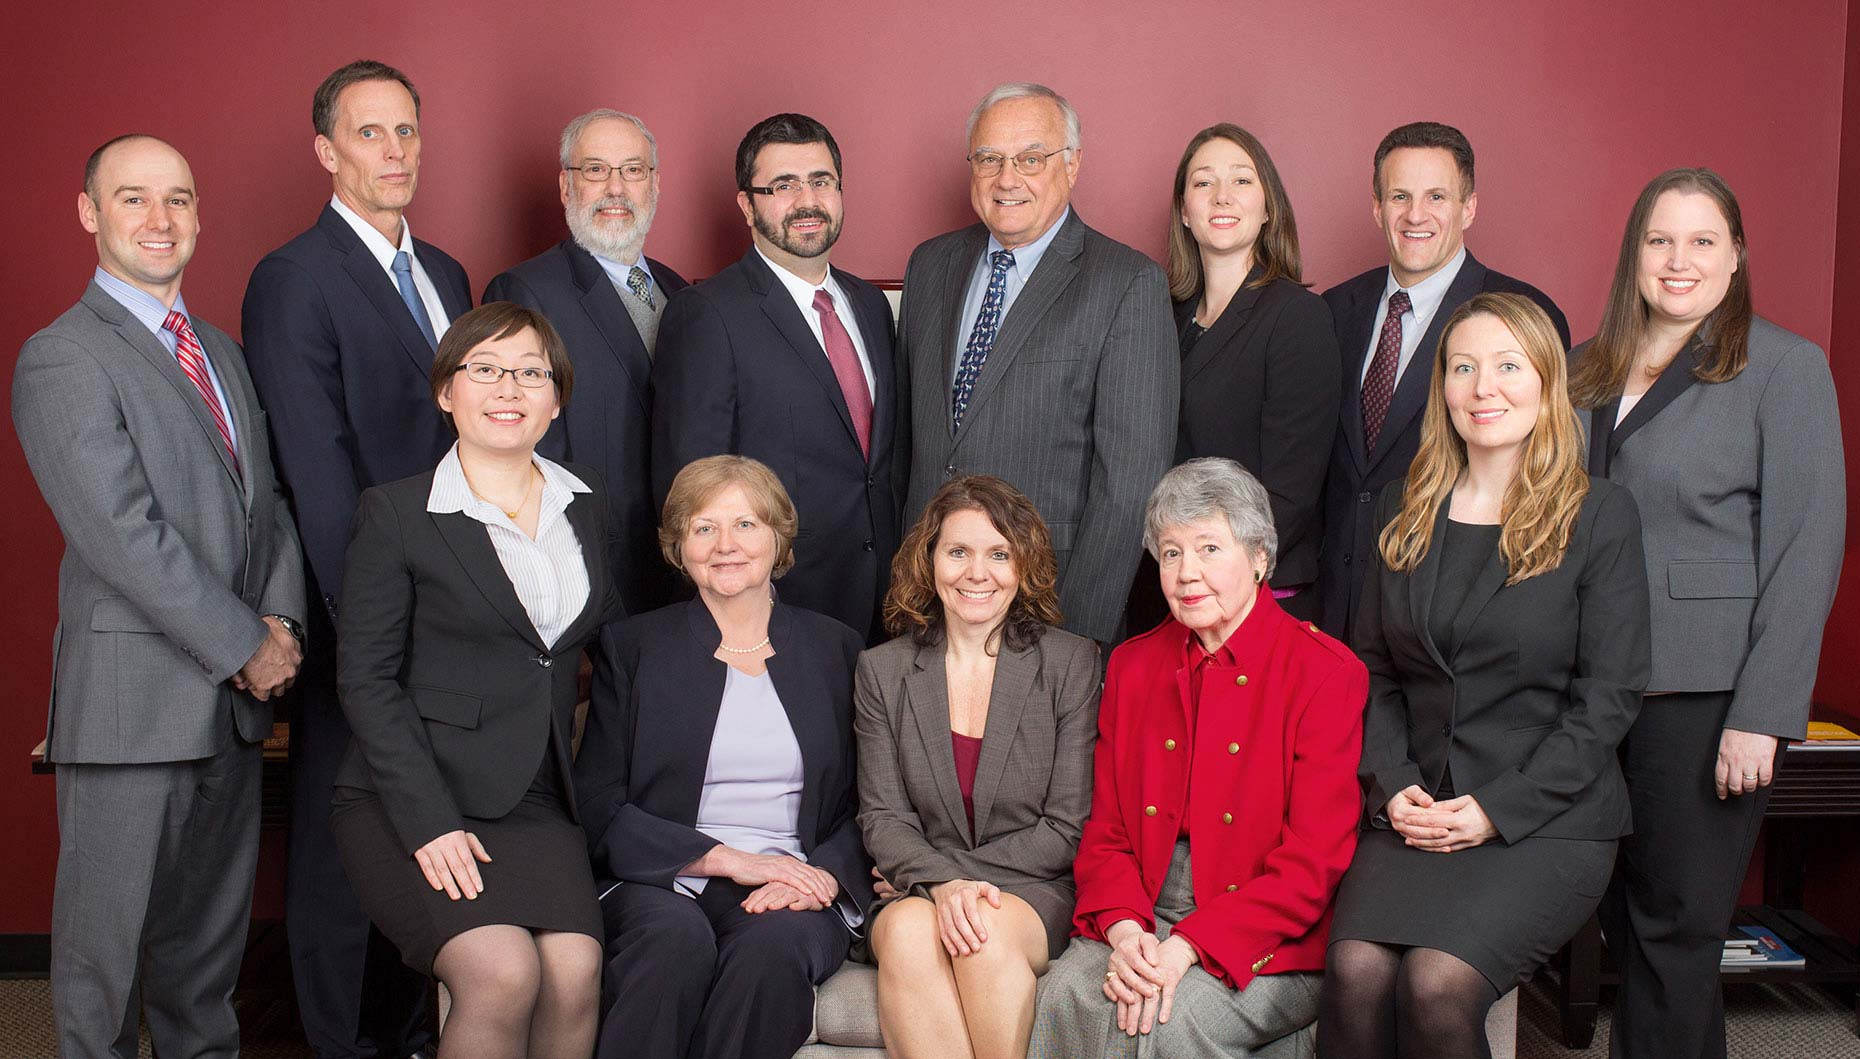 Corporate Group Portrait by David Fox Photographer